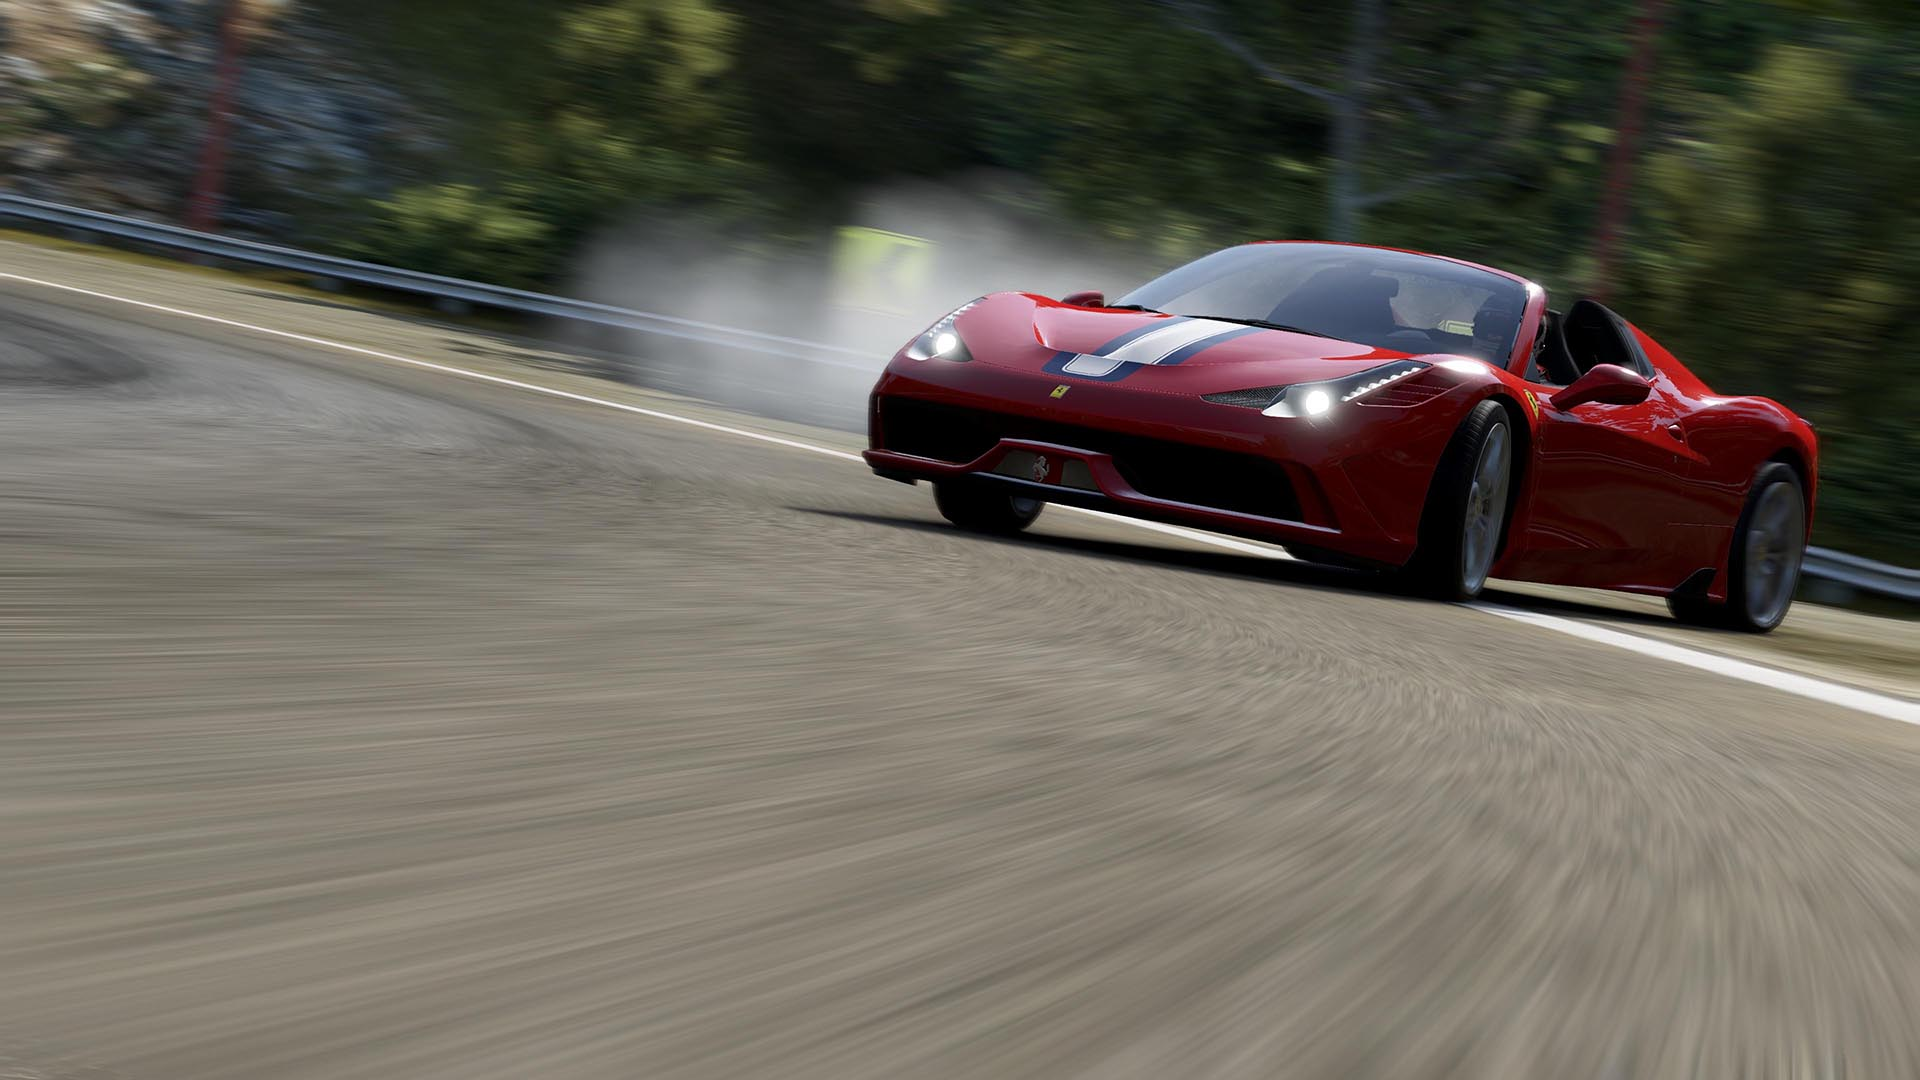 project cars 2 ferrari essentials pack dlc on ps4 official playstation store indonesia. Black Bedroom Furniture Sets. Home Design Ideas